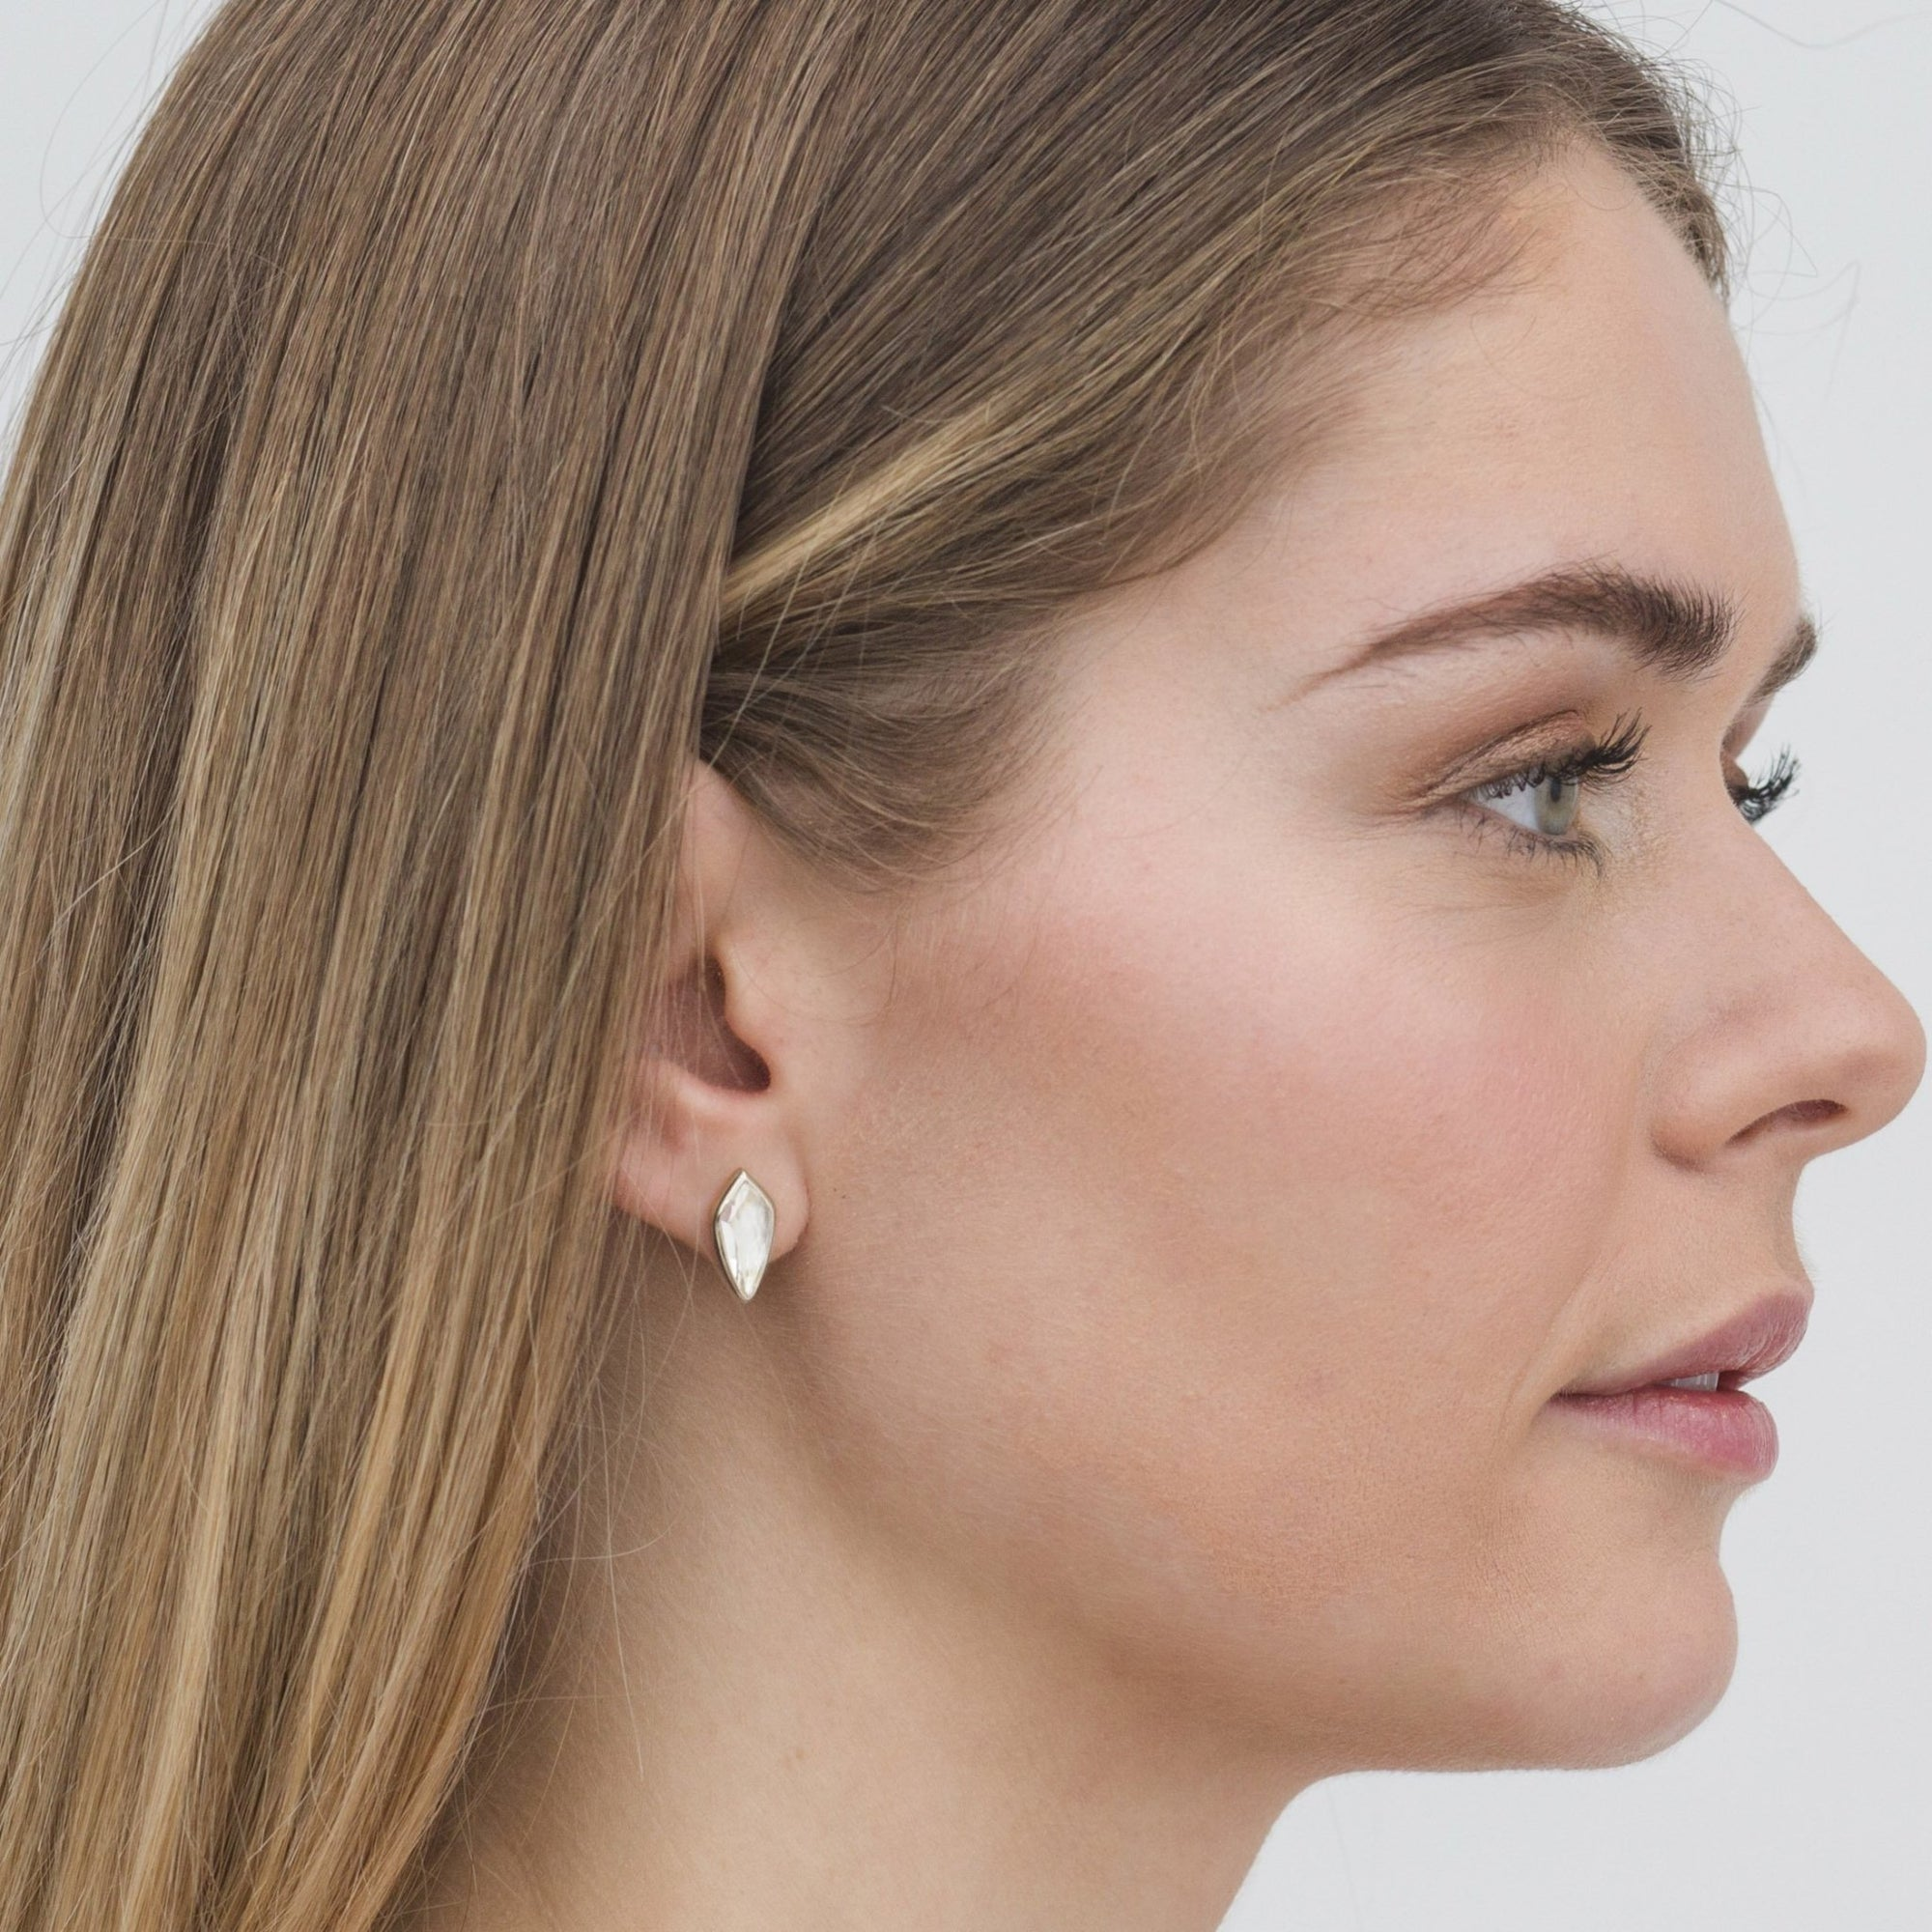 MIDI BRAVE STUD EARRINGS - WHITE TOPAZ & SILVER - SO PRETTY CARA COTTER